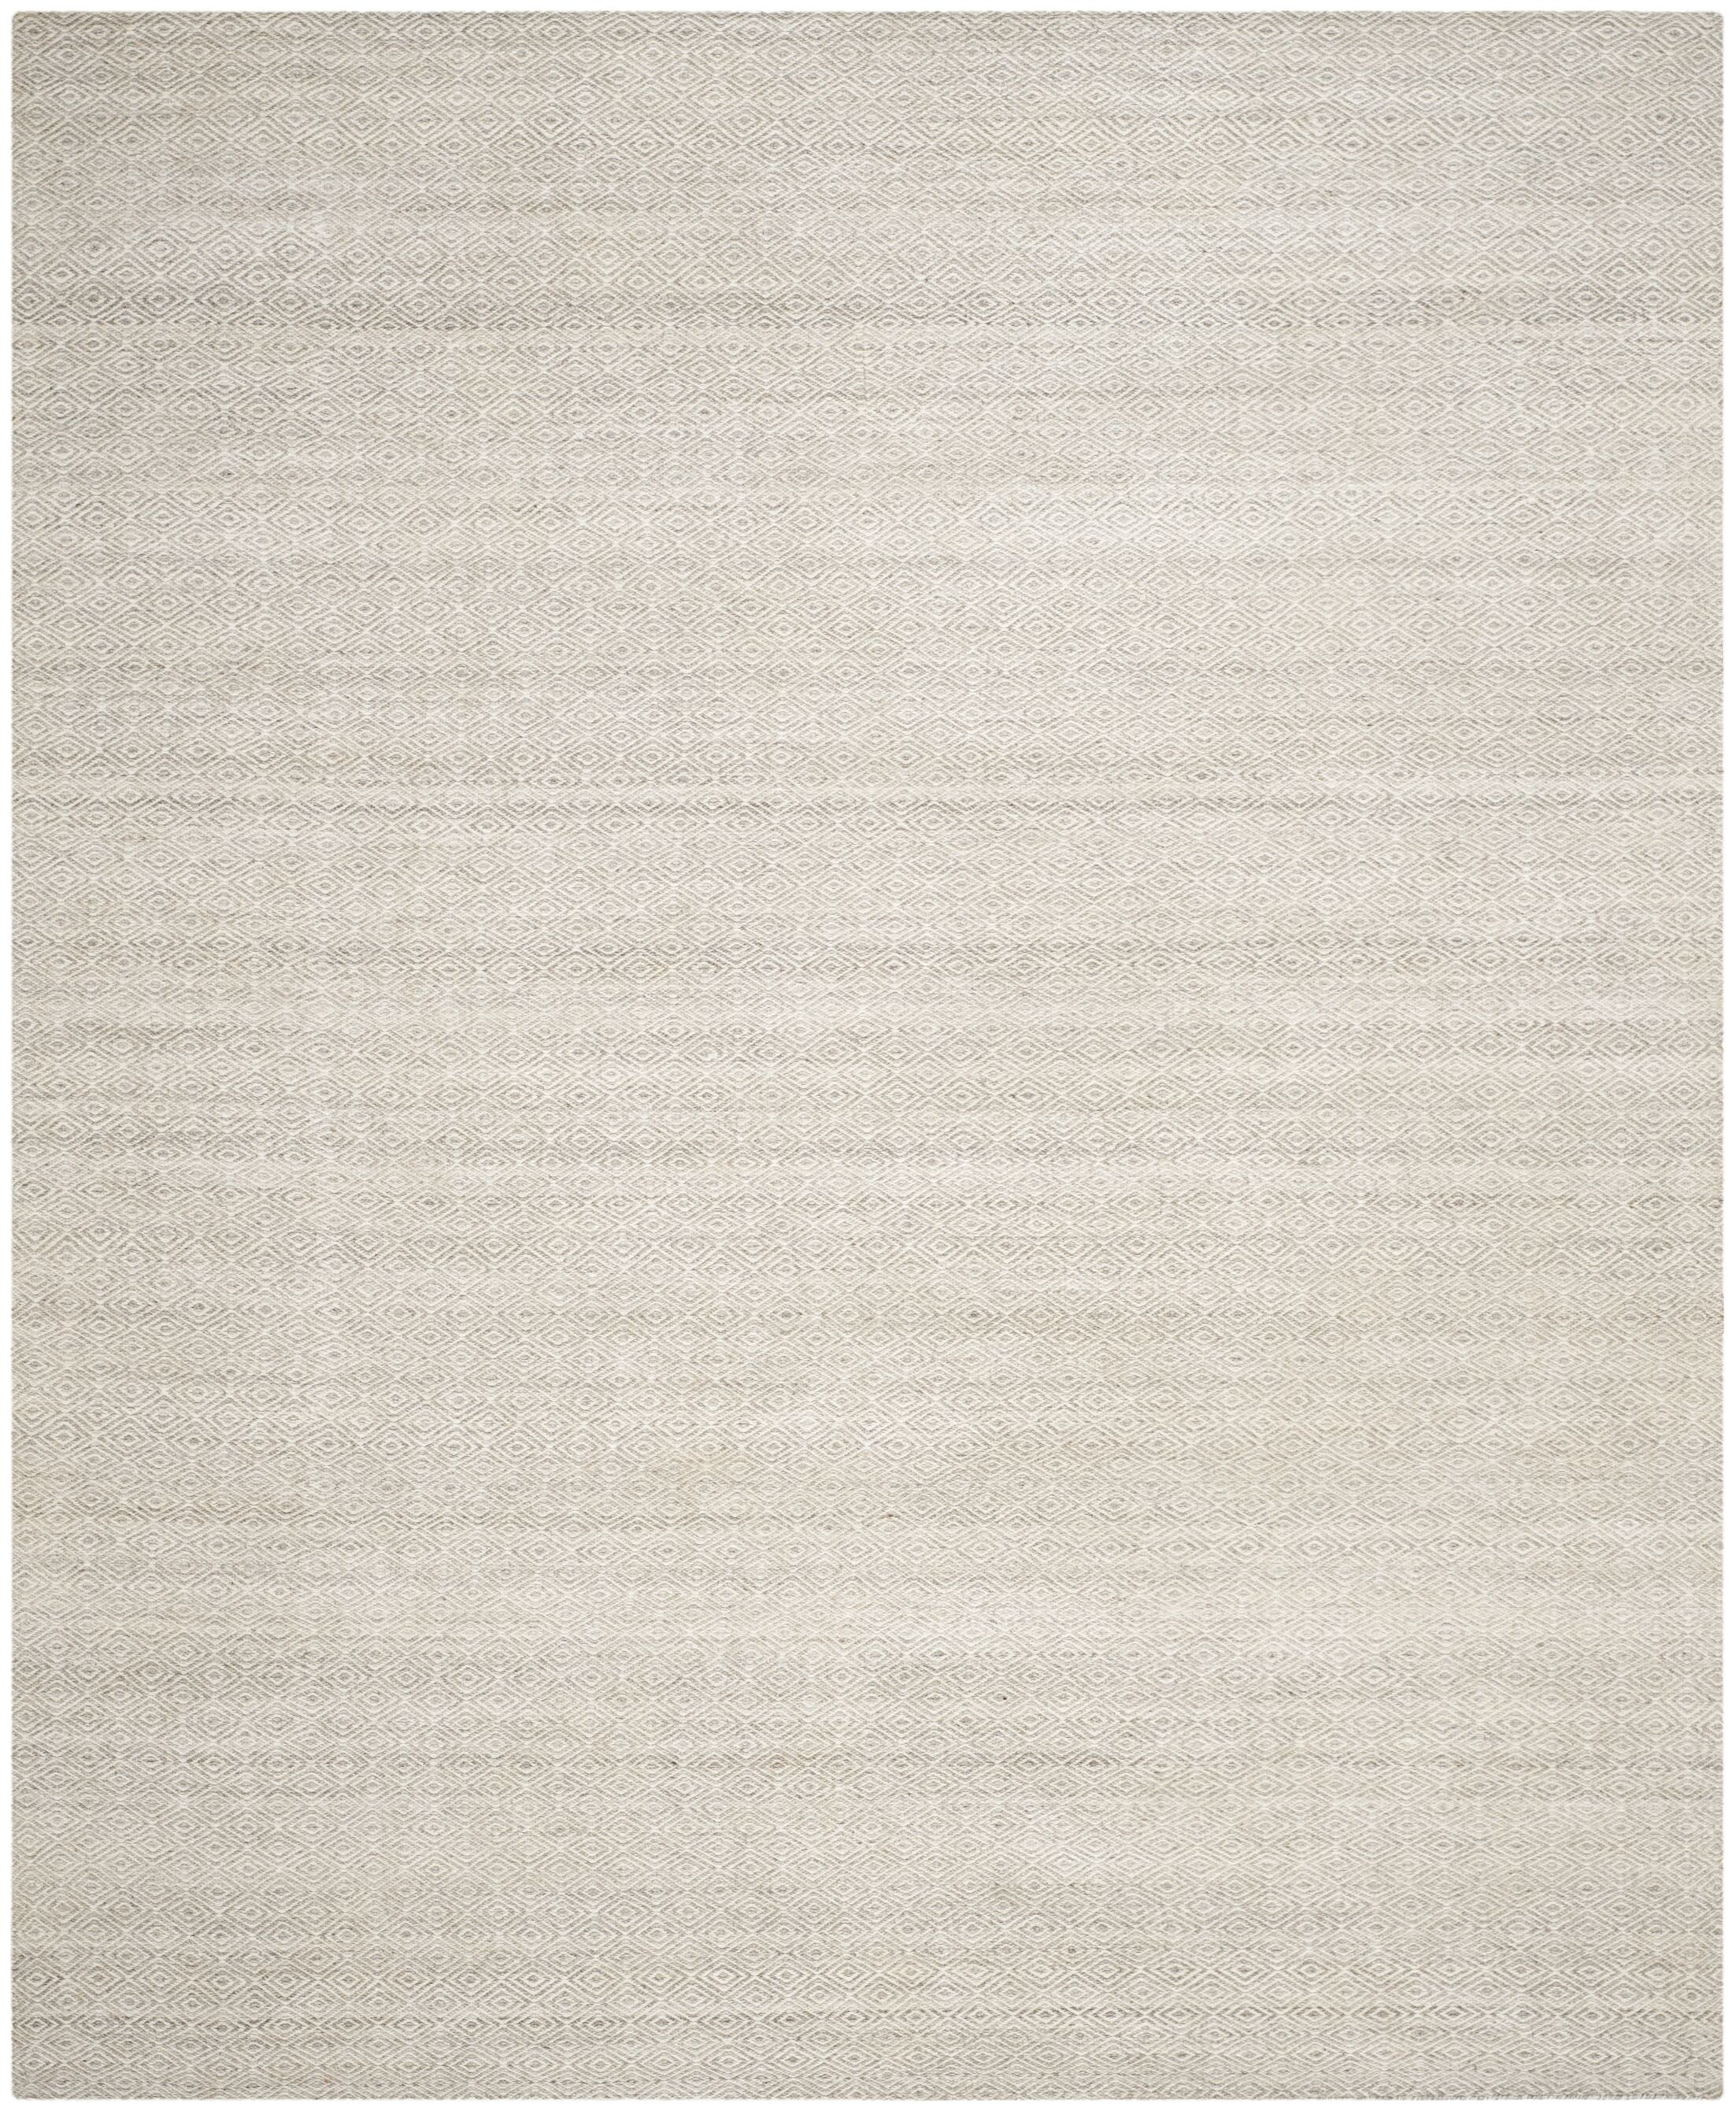 Anis Kilim Ivory/Silver Area Rug Rug Size: Rectangle 8' x 10'